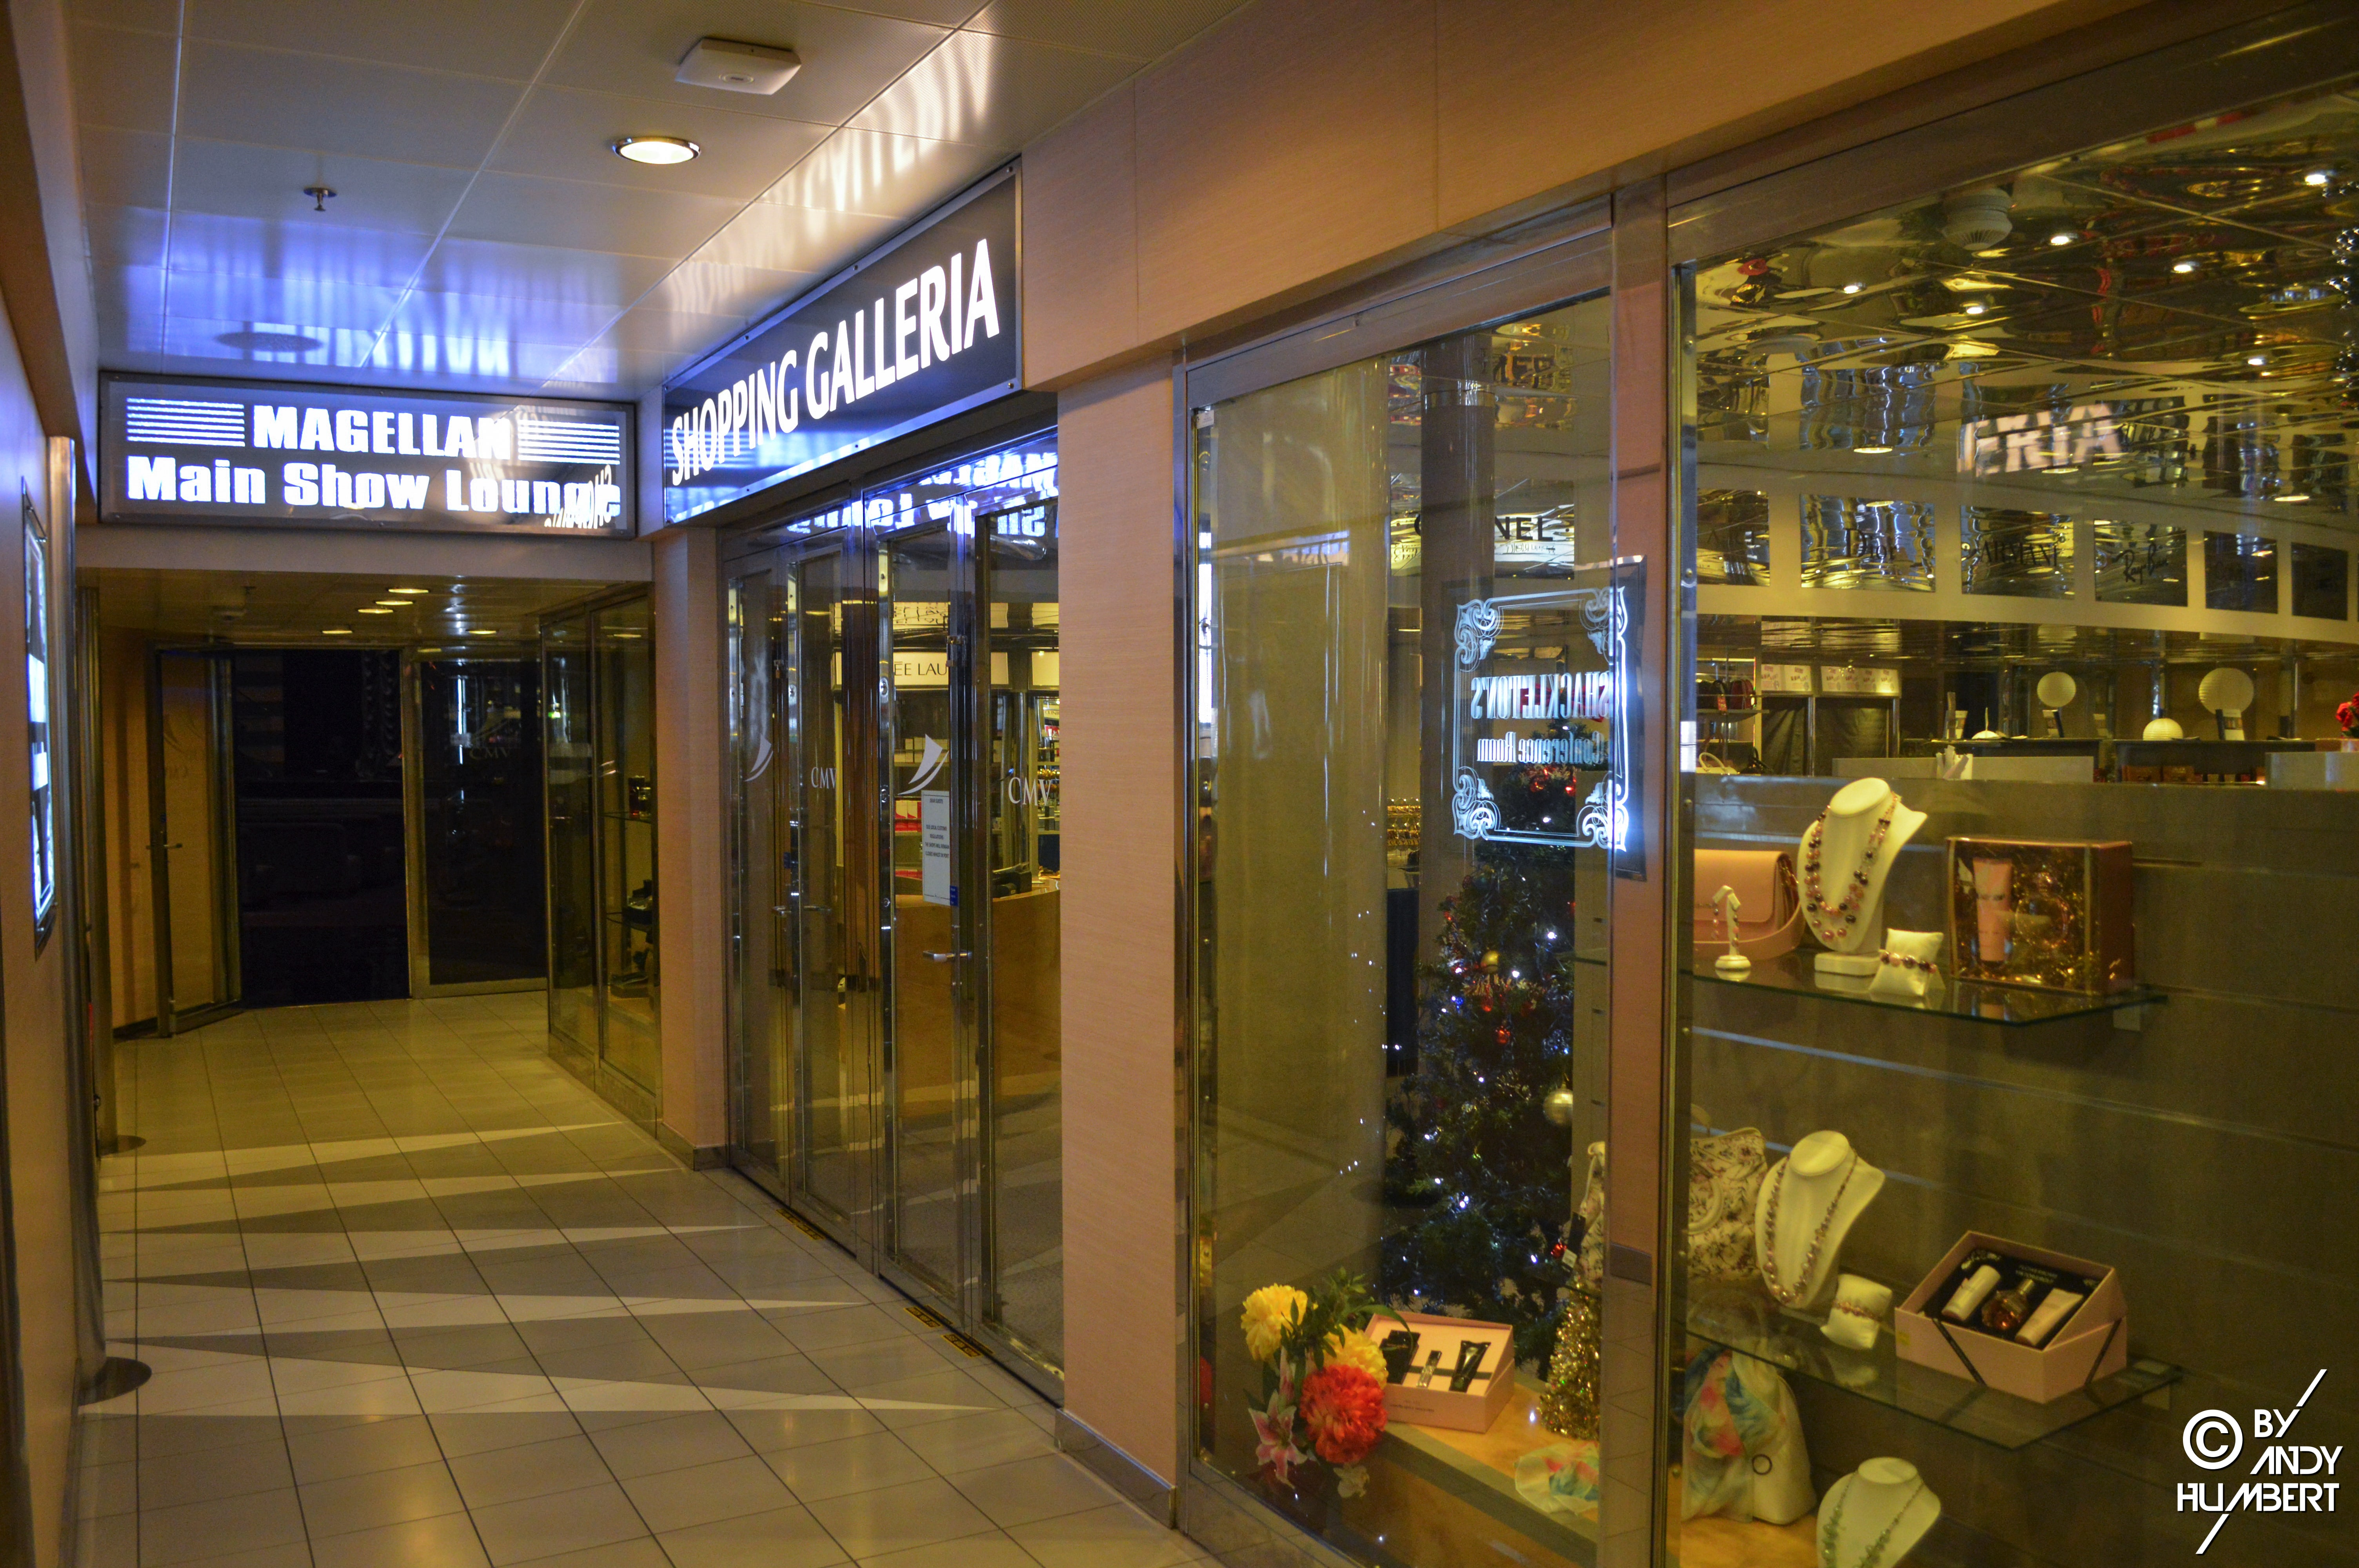 Shopping Galleria (pont 8 Amundsen)